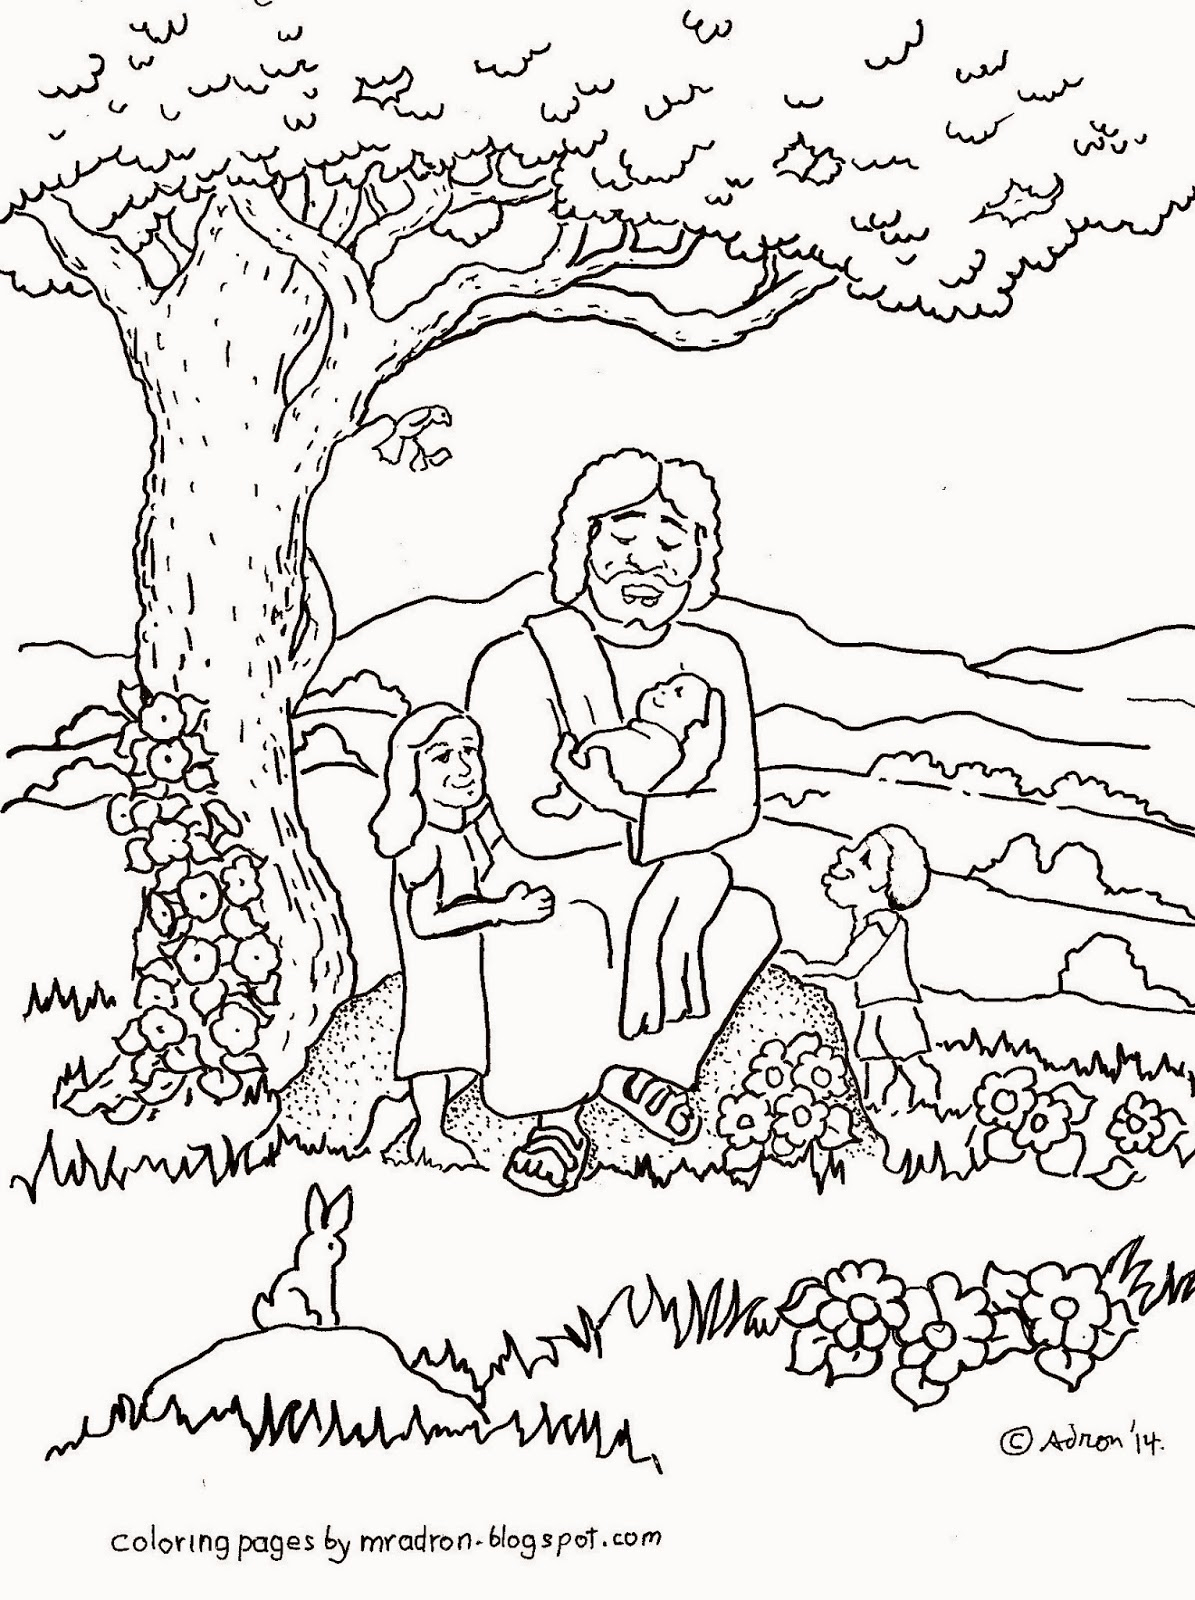 jesus and the children coloring page - jesus blesses children free coloring